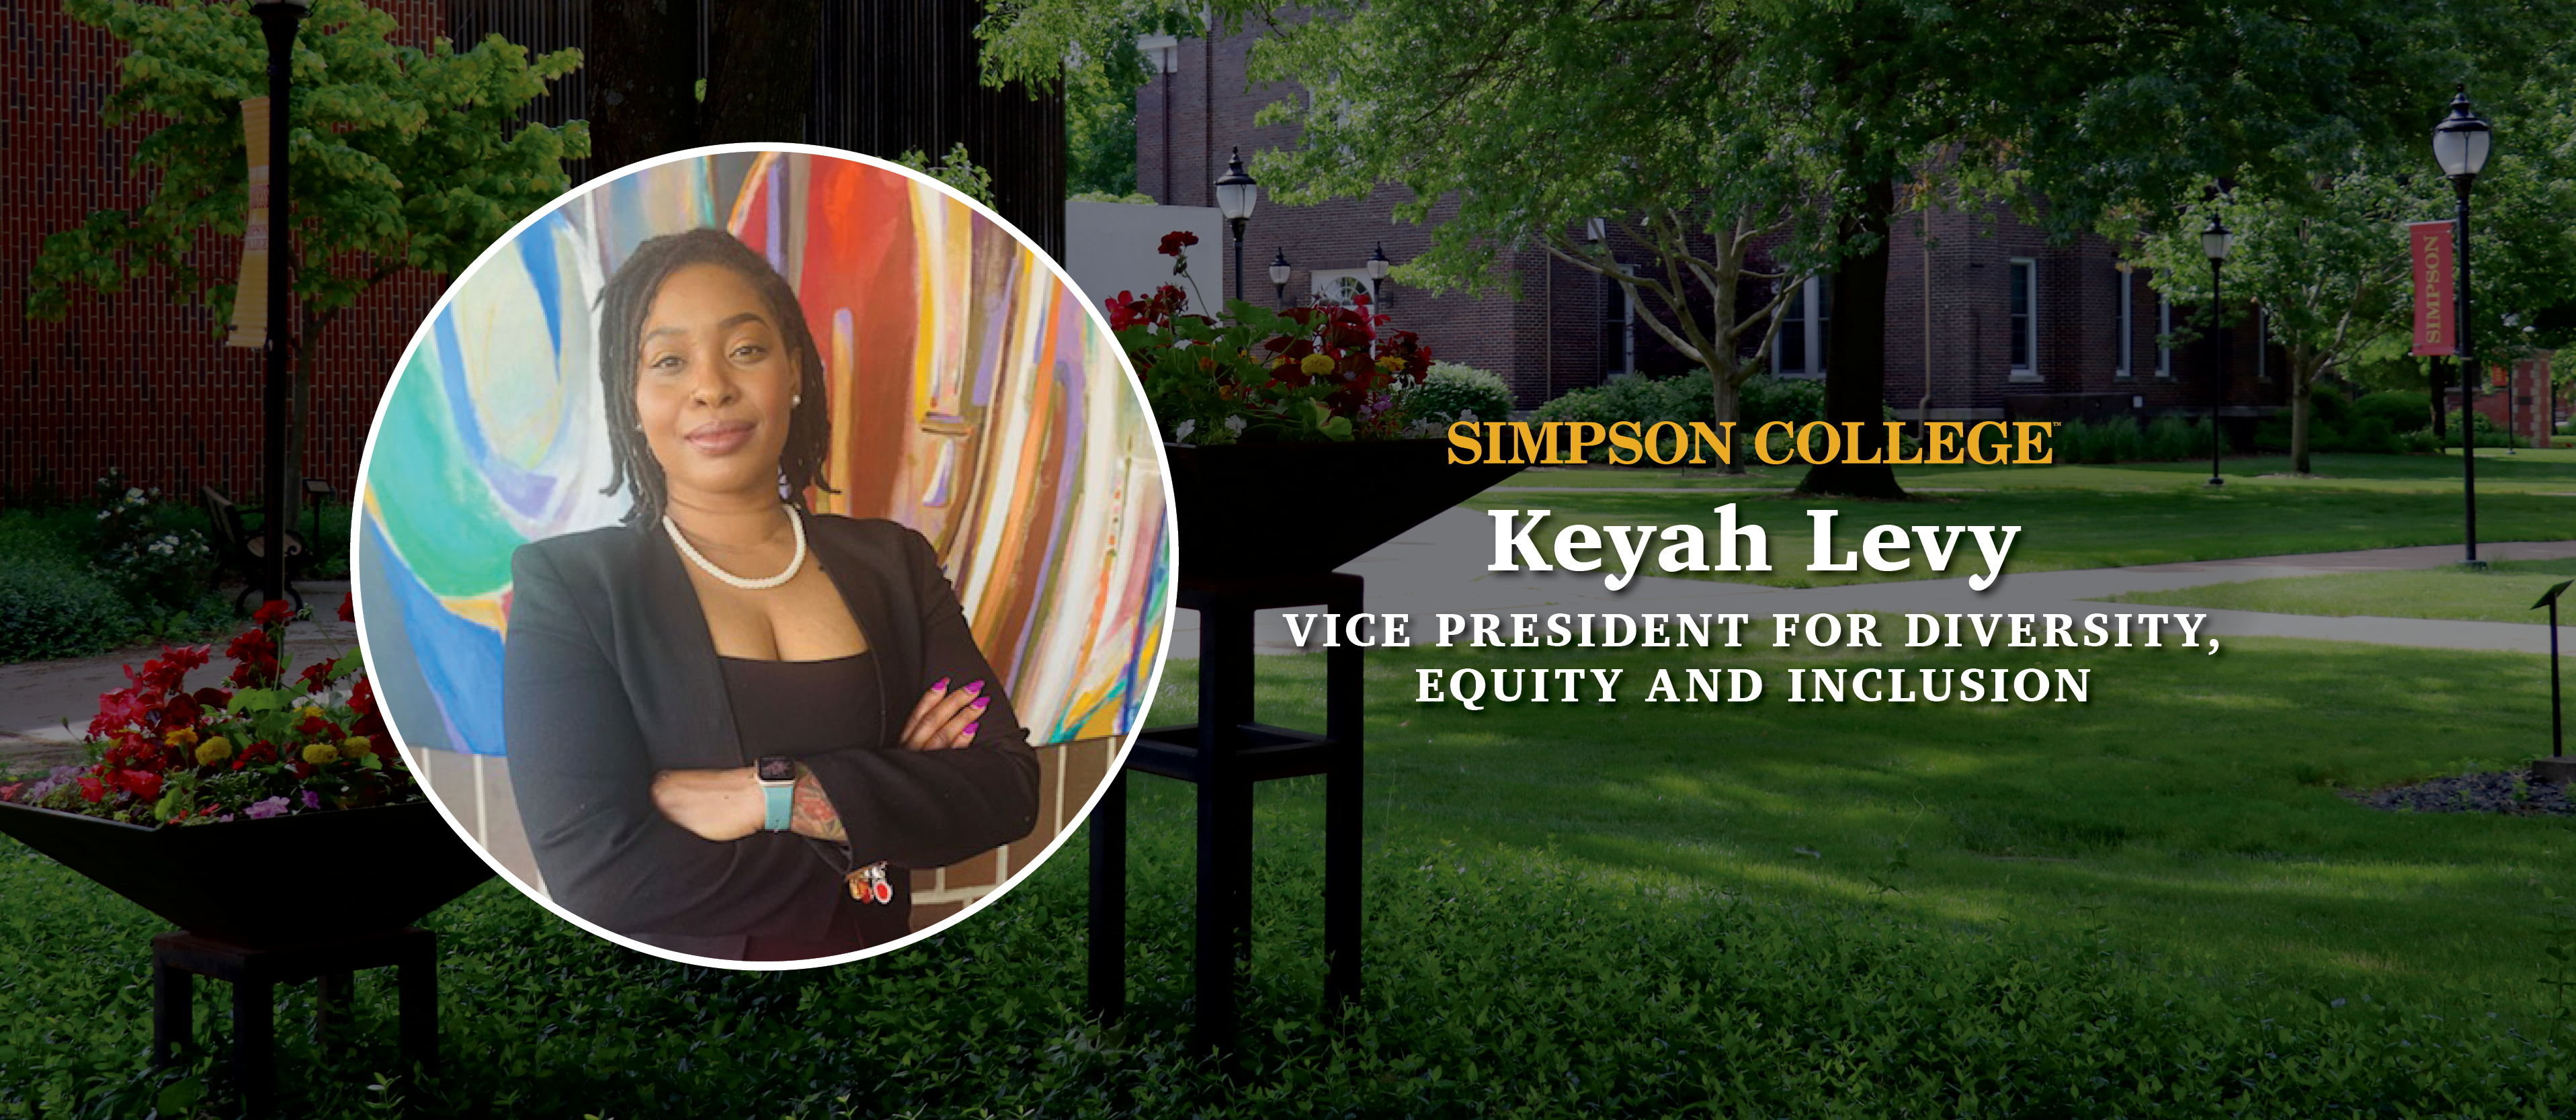 Simpson College announces new vice president for diversity, equity and inclusion